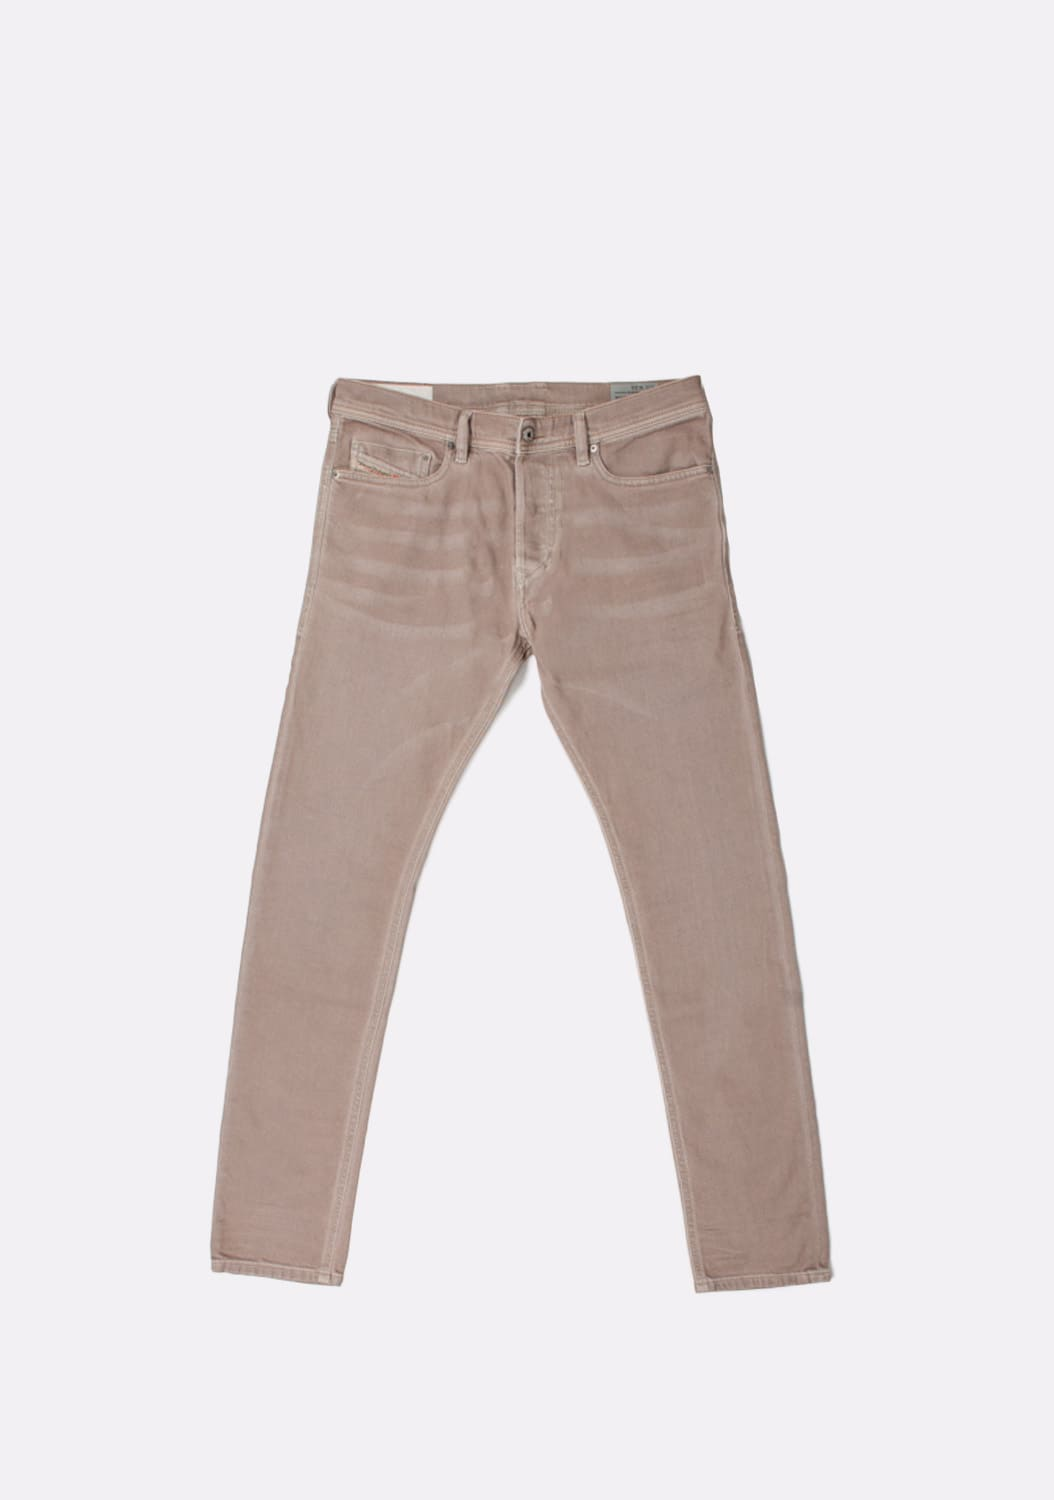 Diesel-Tepphar-0850Y-Stretch-Slim-Carrot-dzinsai-dydis-31 (2)